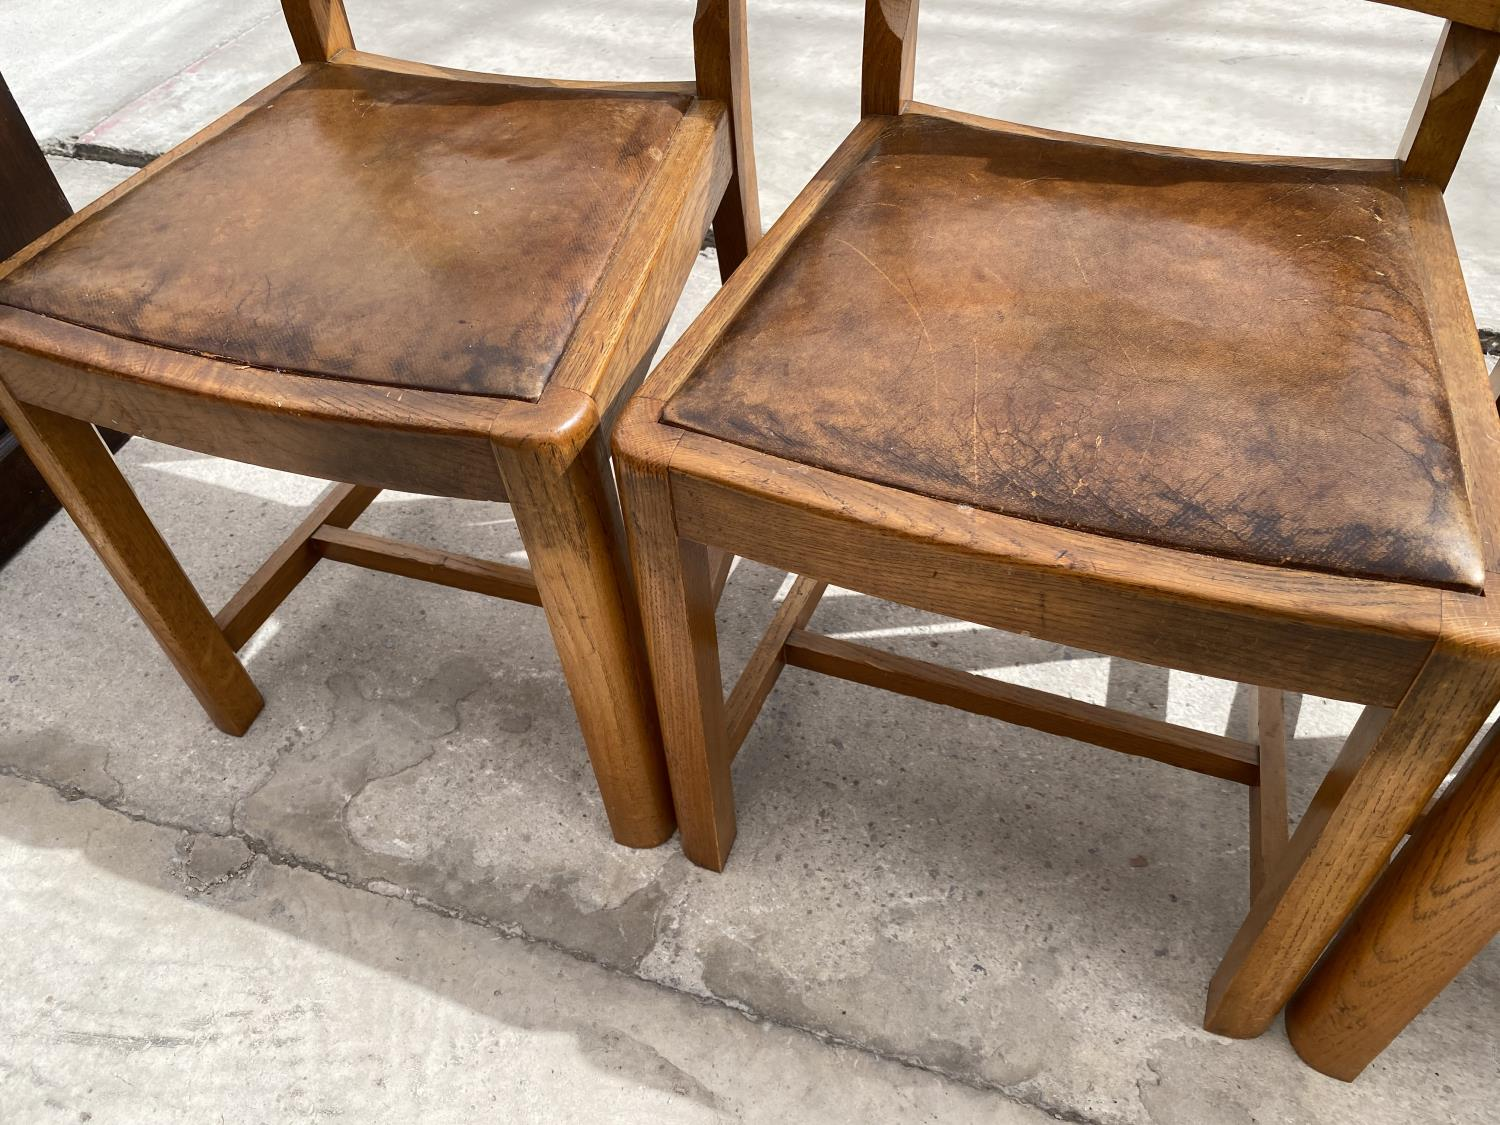 A SET OF MID 20TH CENTURY OAK DINING CHAIRS - Image 5 of 5